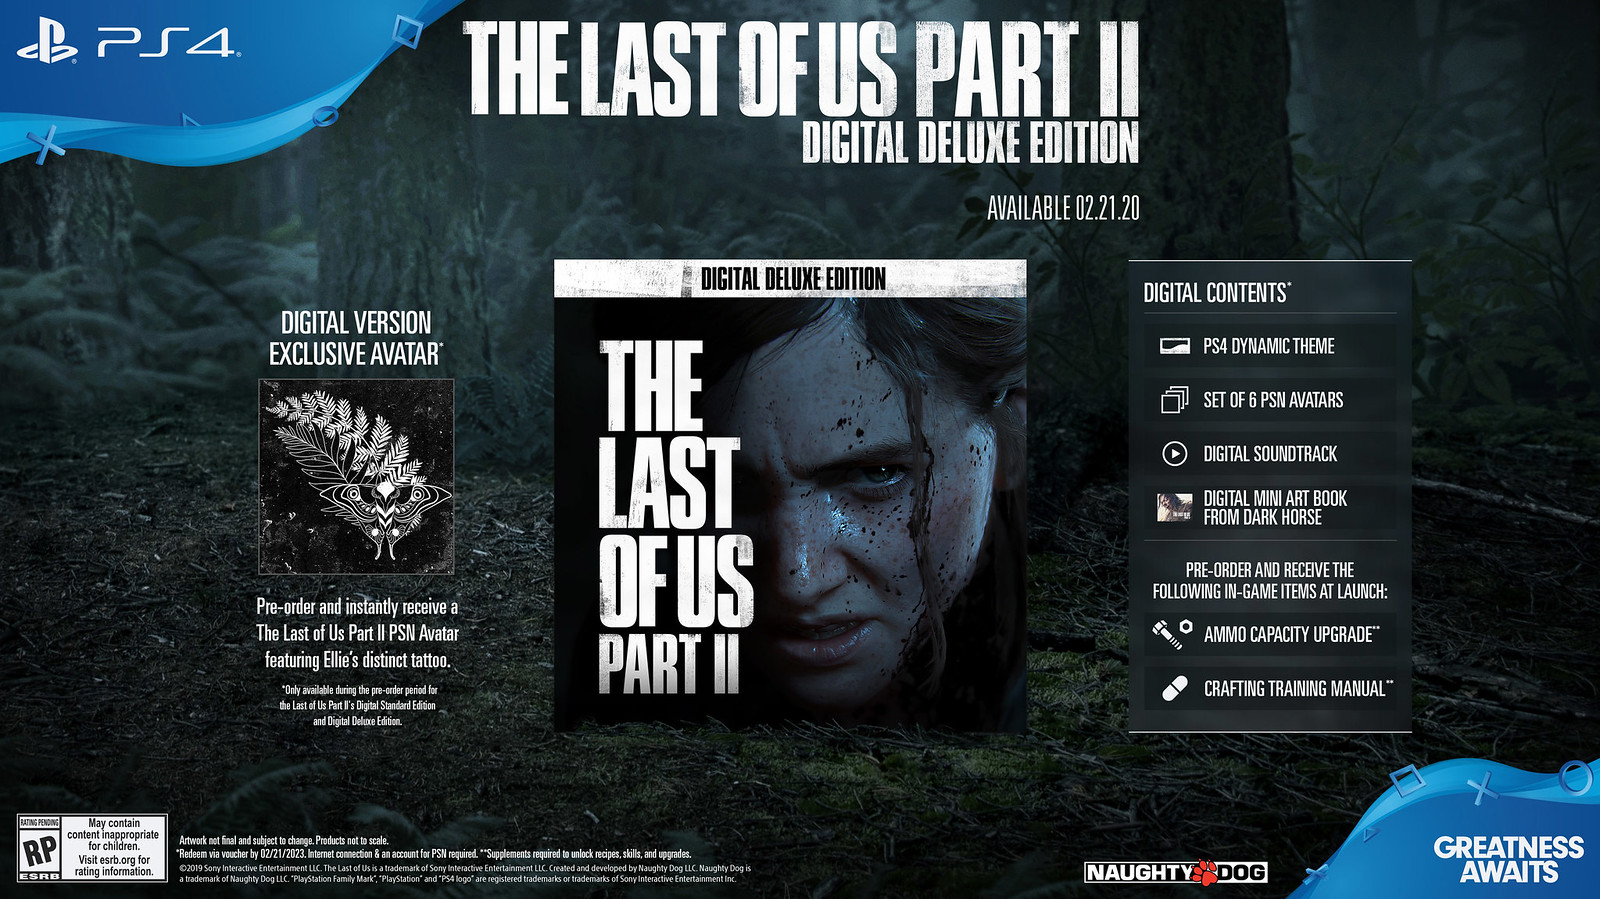 The Last of Us Part II - Digital Deluxe Edition